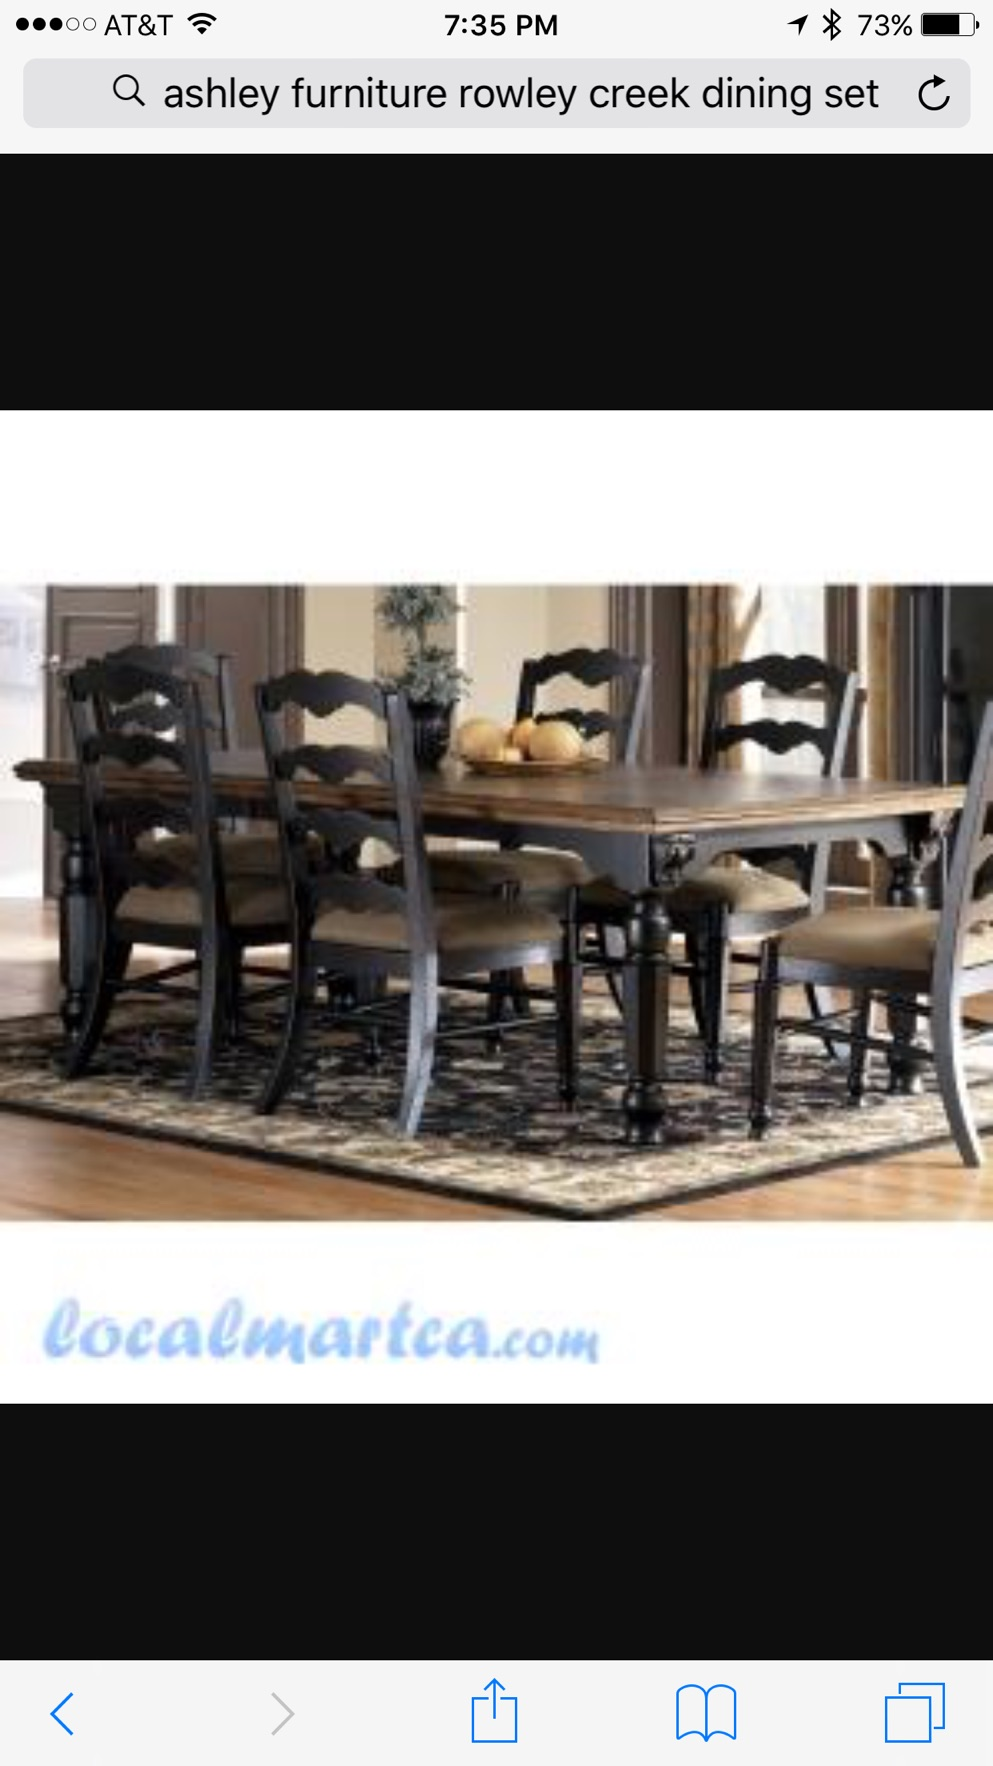 Price Reduced Ashley Furniture Rowley Creek Dining Room